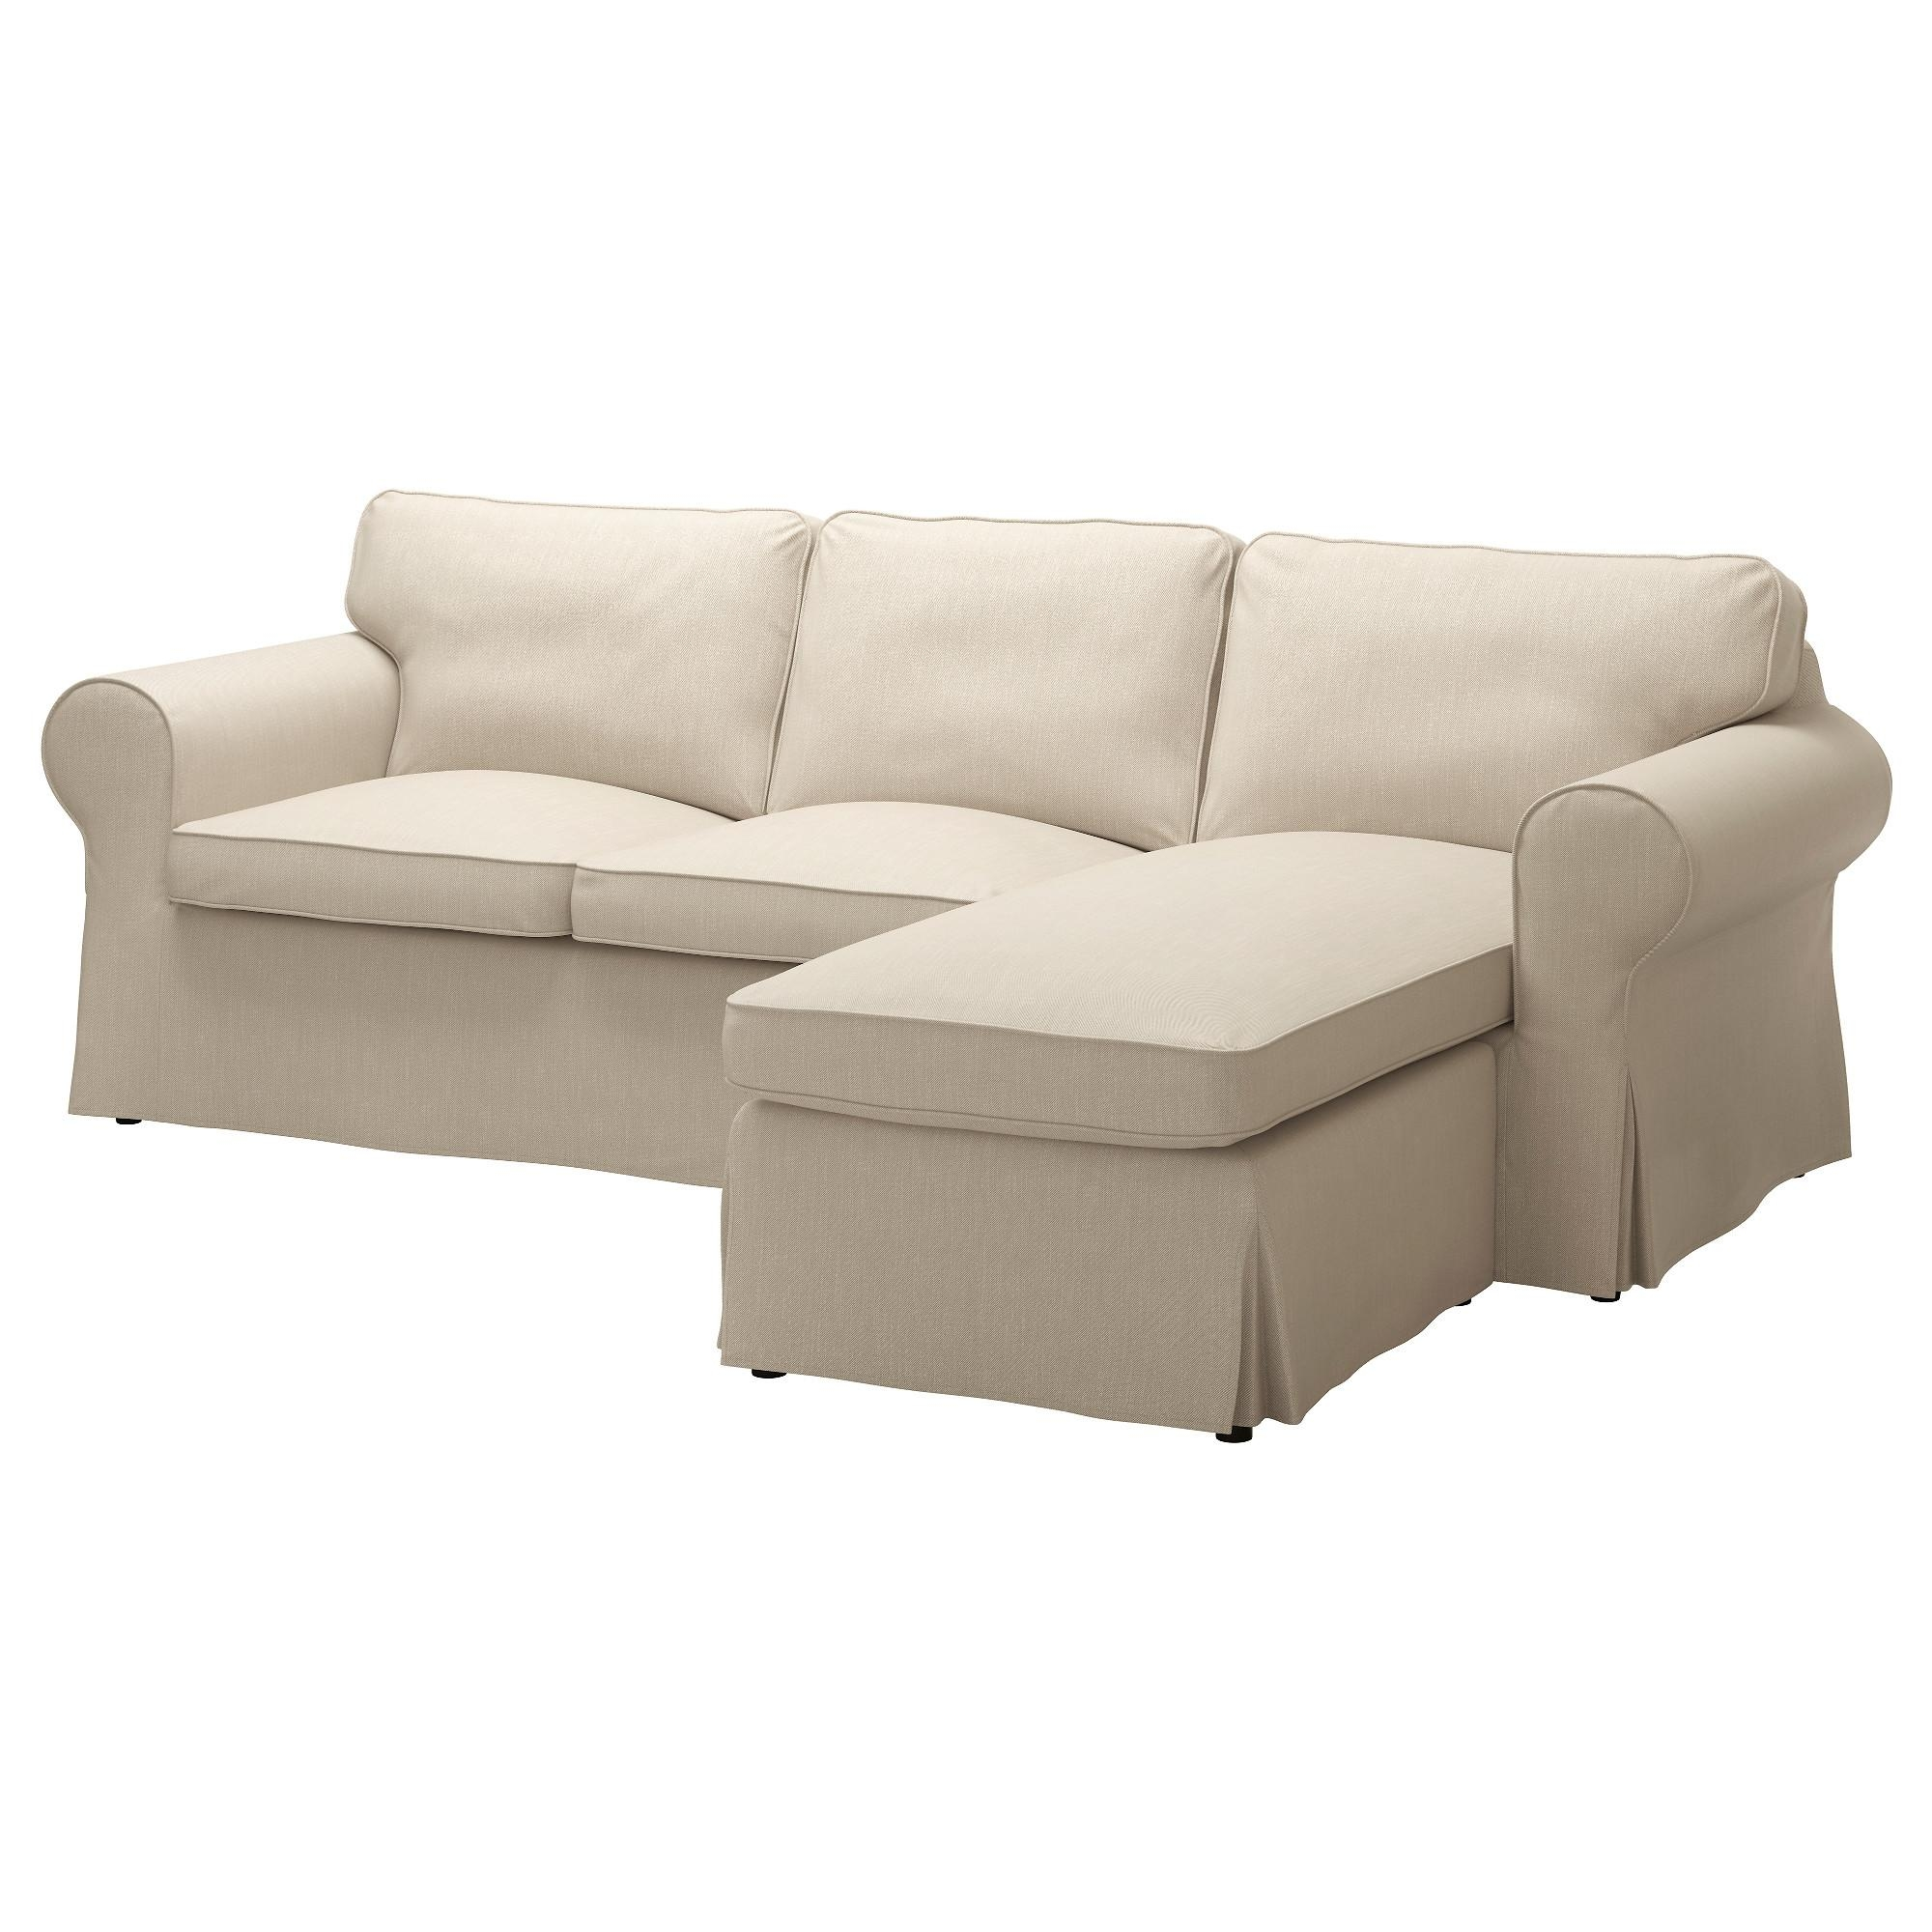 20 photos ikea chaise lounge sofa sofa ideas for Chaise and sofa